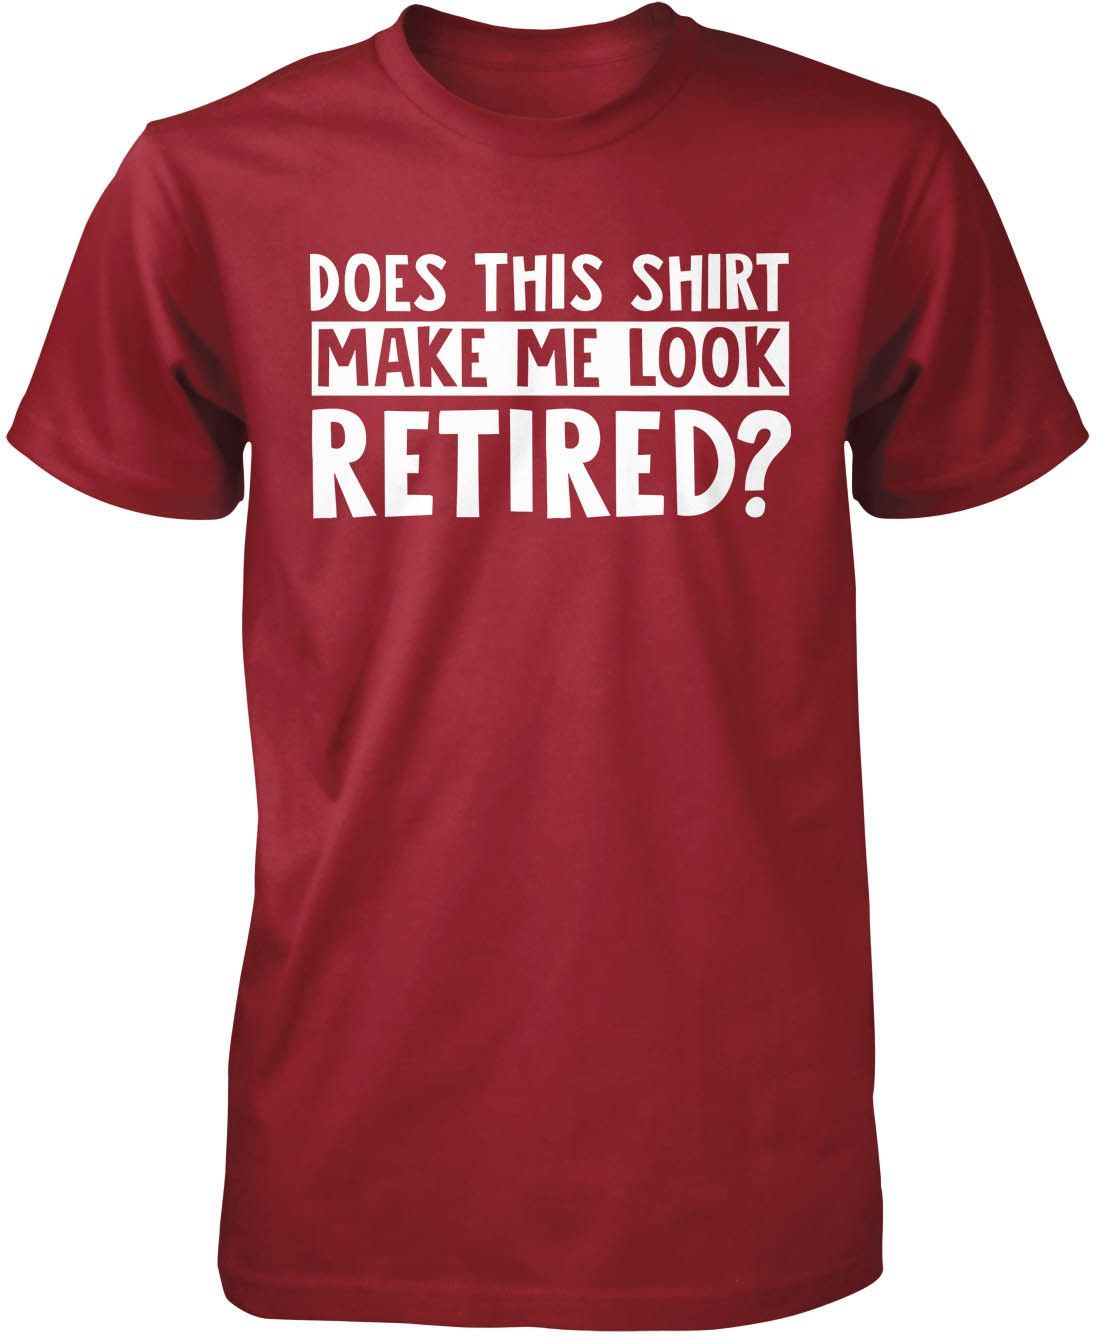 Does this shirt make me look retired tshirt camping